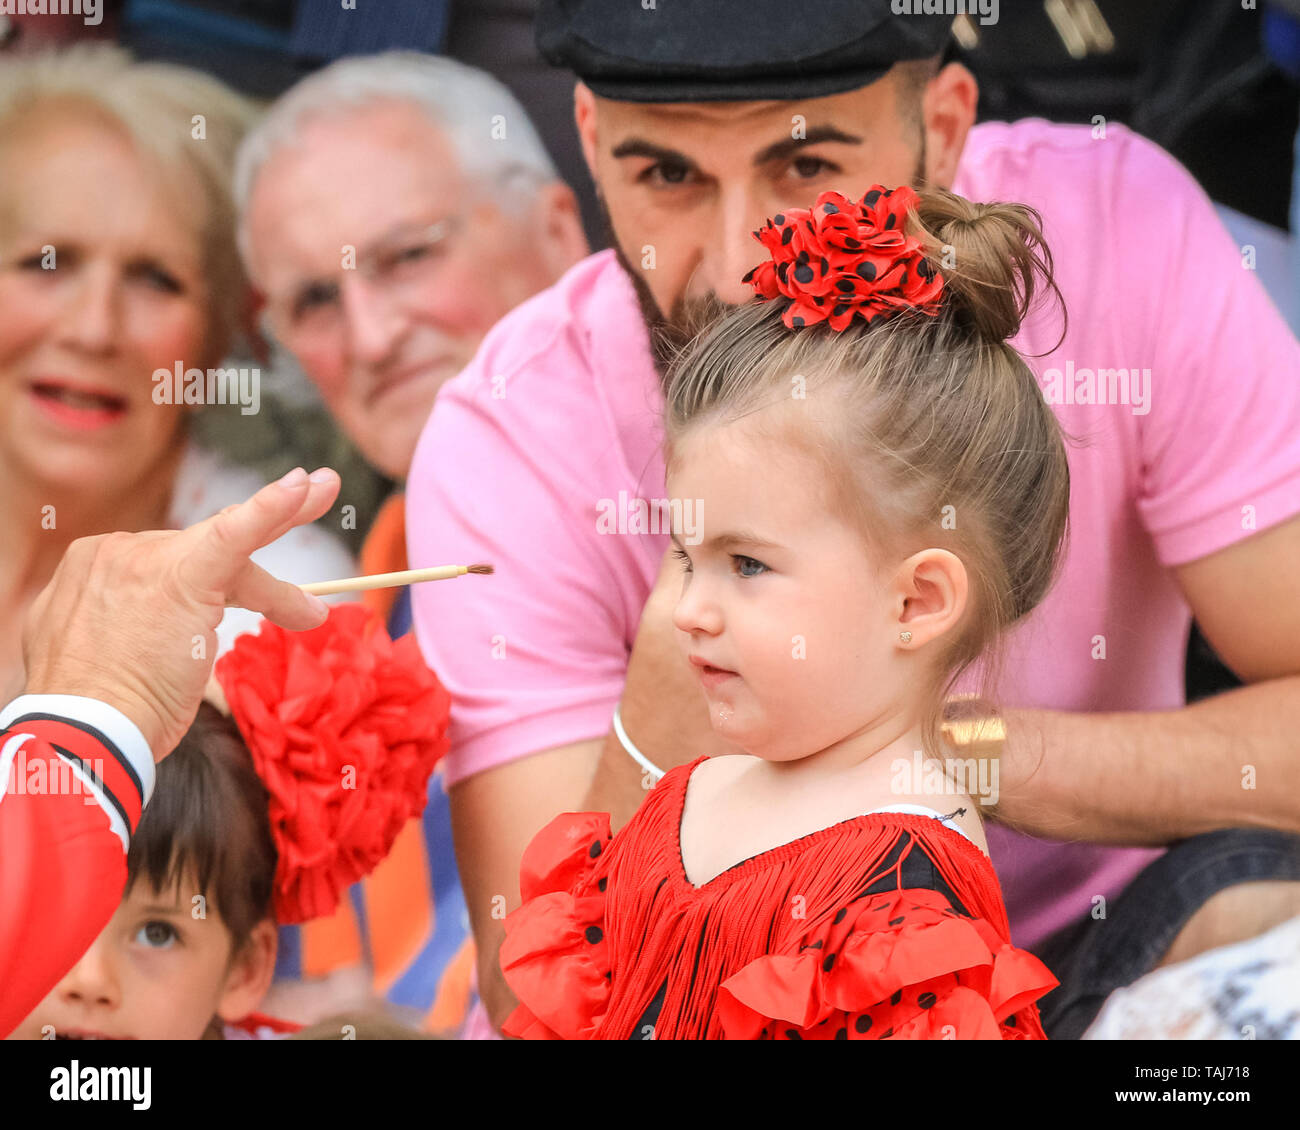 South Bank, London, UK - 25th May 2019. Sevilla based Flamenco dancer and teacher El Torombo teaches young children various flamenco movements, including a hand movement learned by holding a simple paint brush. The Feria de Londres is a free festival on London's South Bank presenting Spanish culture, dance, music, wine and food from May 24-26. Credit: Imageplotter/Alamy Live News - Stock Image